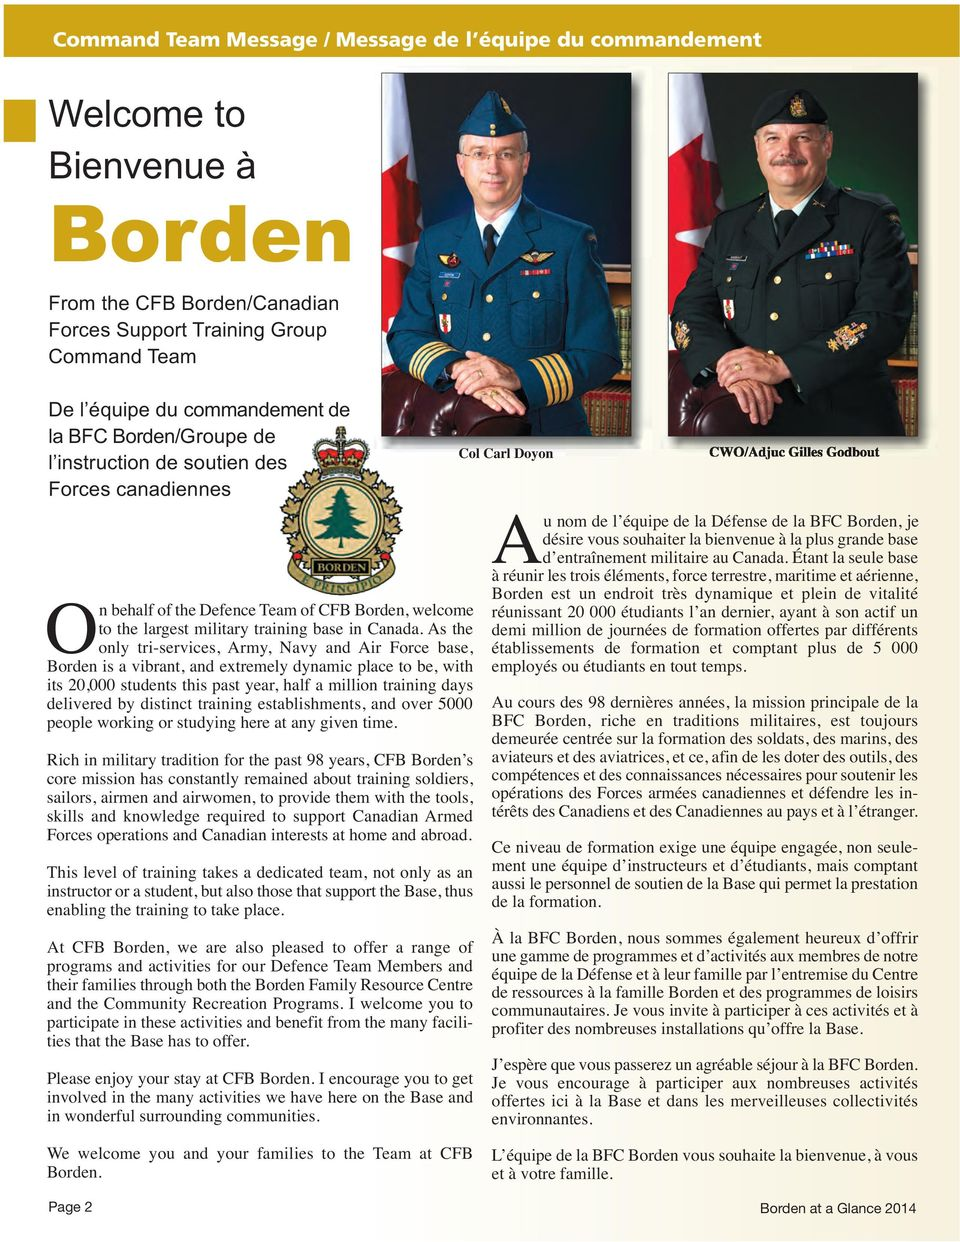 As the only tri-services, Army, Navy and Air Force base, Borden is a vibrant, and extremely dynamic place to be, with its 20,000 students this past year, half a million training days delivered by